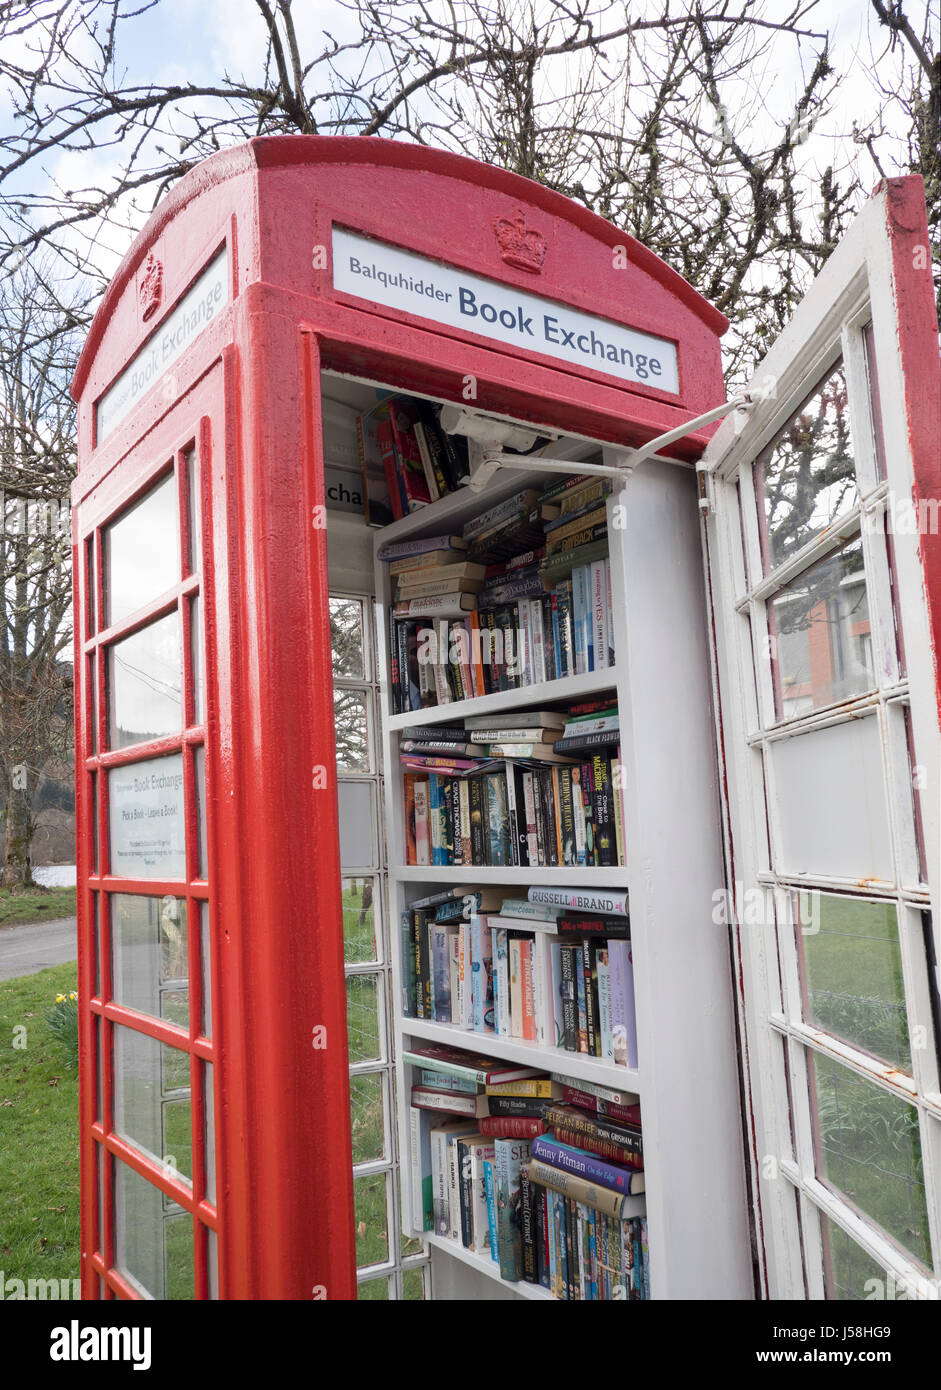 Balquhidder Book Exchange in an old red telephone kiosk, Balquhidder, Perthshire, Scotland - Stock Image